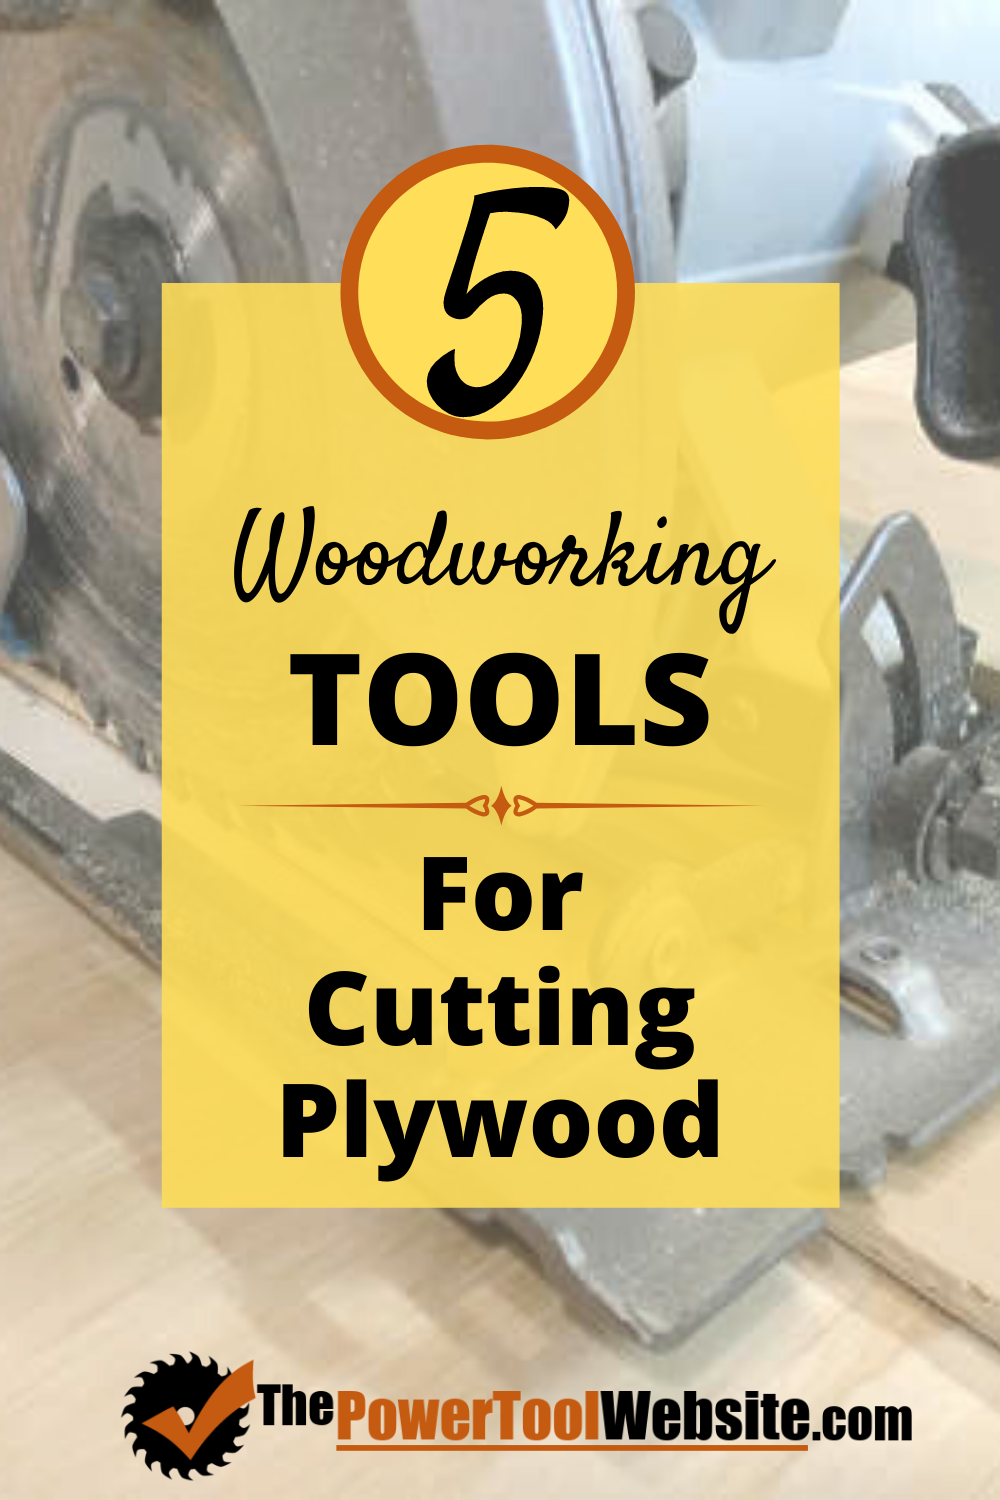 5 Tools For Cutting Plywood Easily, Safely, and Accurately